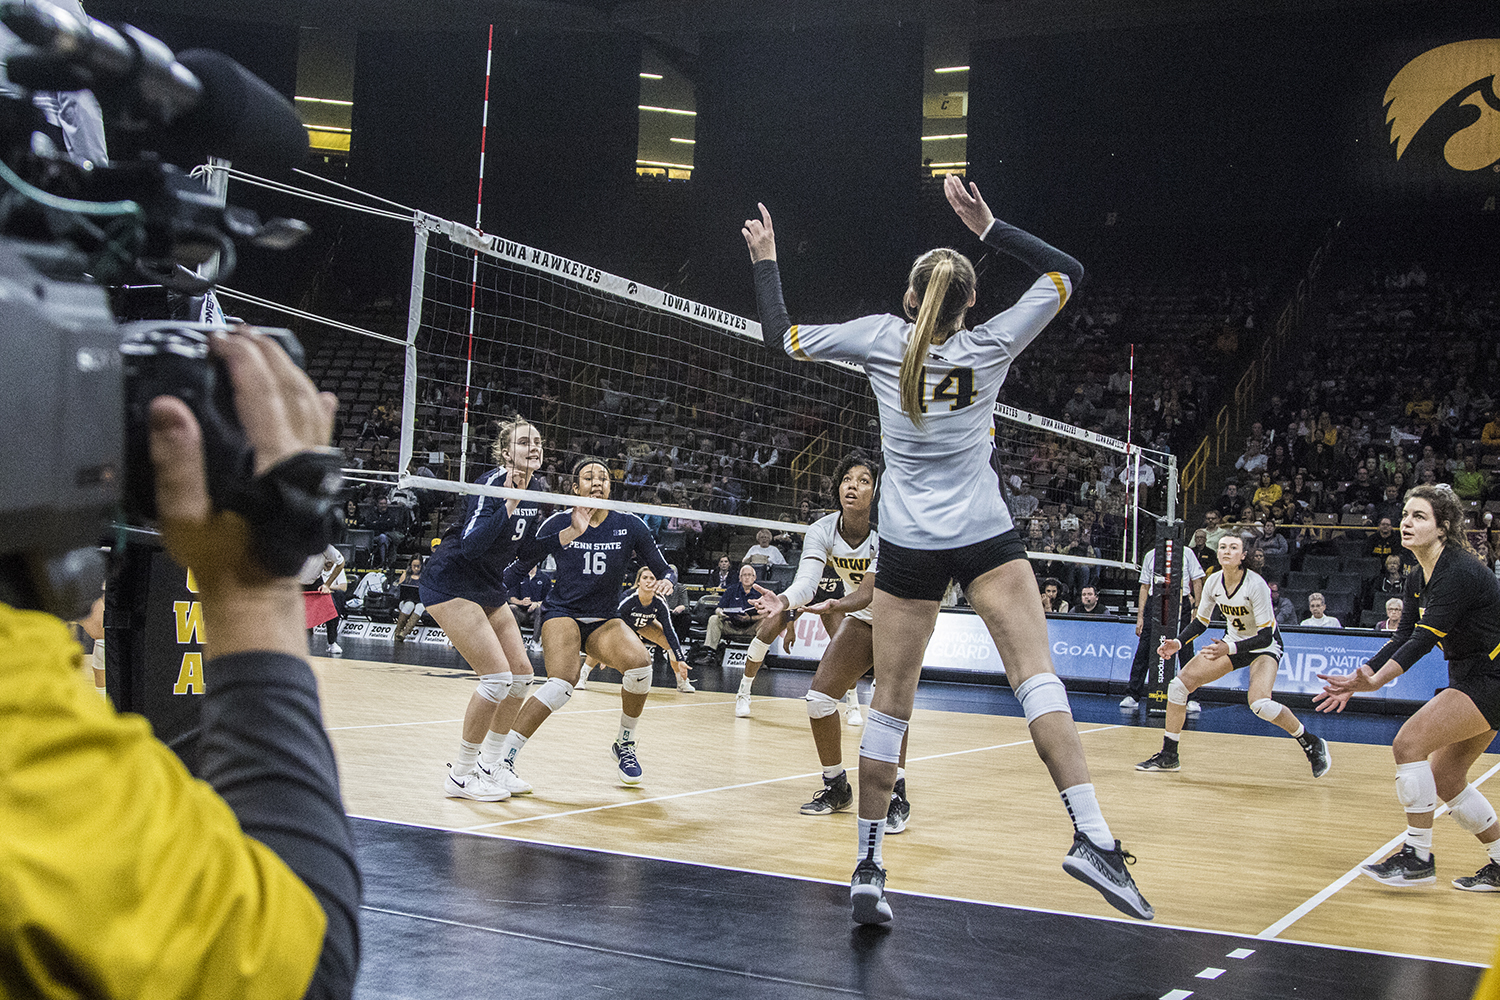 Iowa+junior+Cali+Hoye+prepares+to+spike+the+ball+during+a+volleyball+match+between+Iowa+and+Penn+State+at+Carver-Hawkeye+Arena+on+Saturday%2C+Nov.+3%2C+2018.+The+Hawkeyes+were+shut+out+by+the+Nittany+Lions%2C+3-0.